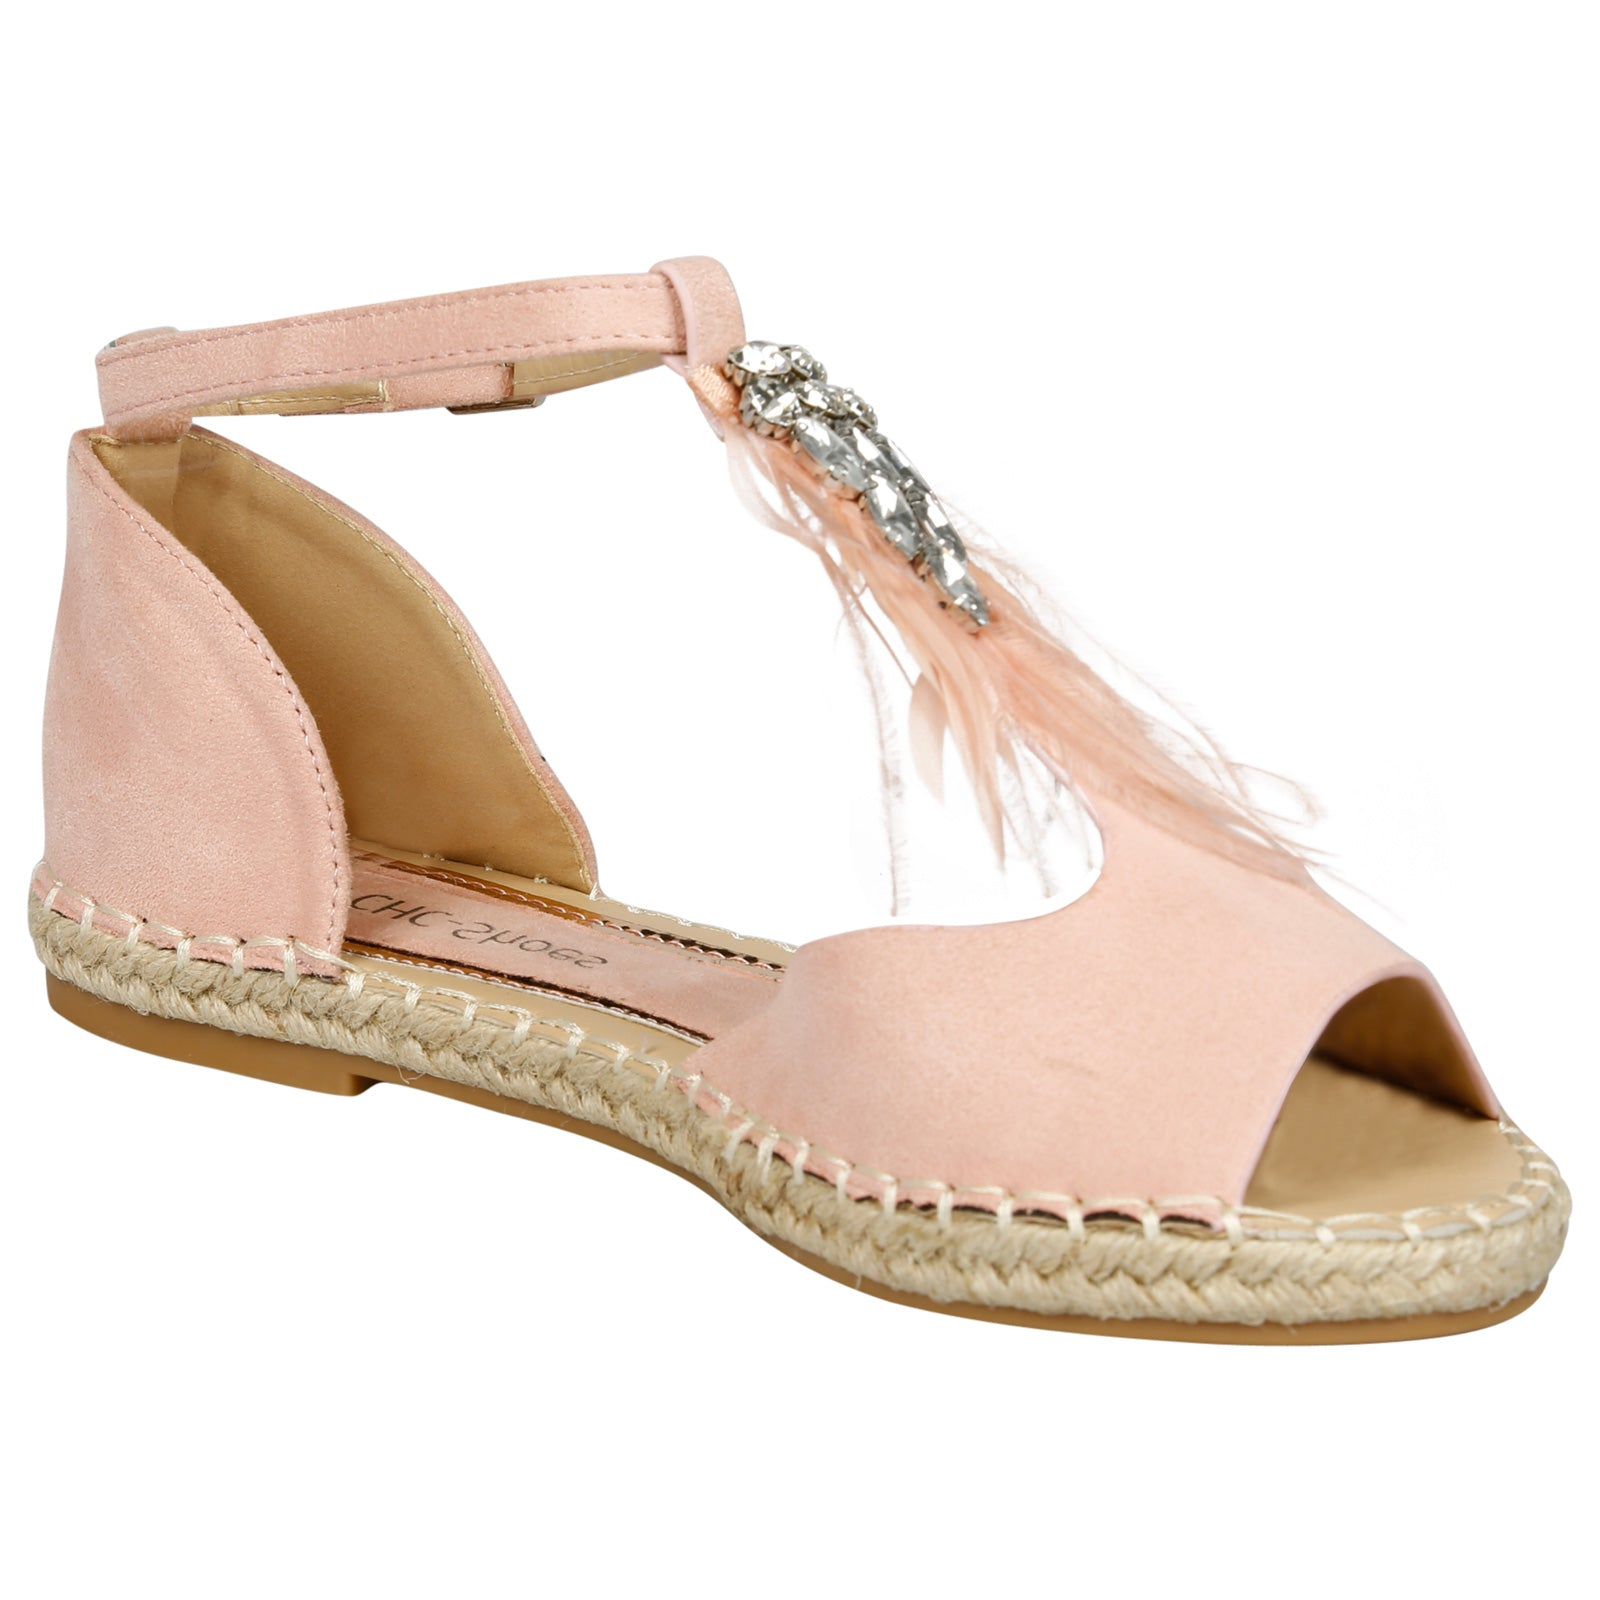 Gaia Feather T Bar Espadrille Sandals in Pink Faux Suede - Feet First Fashion